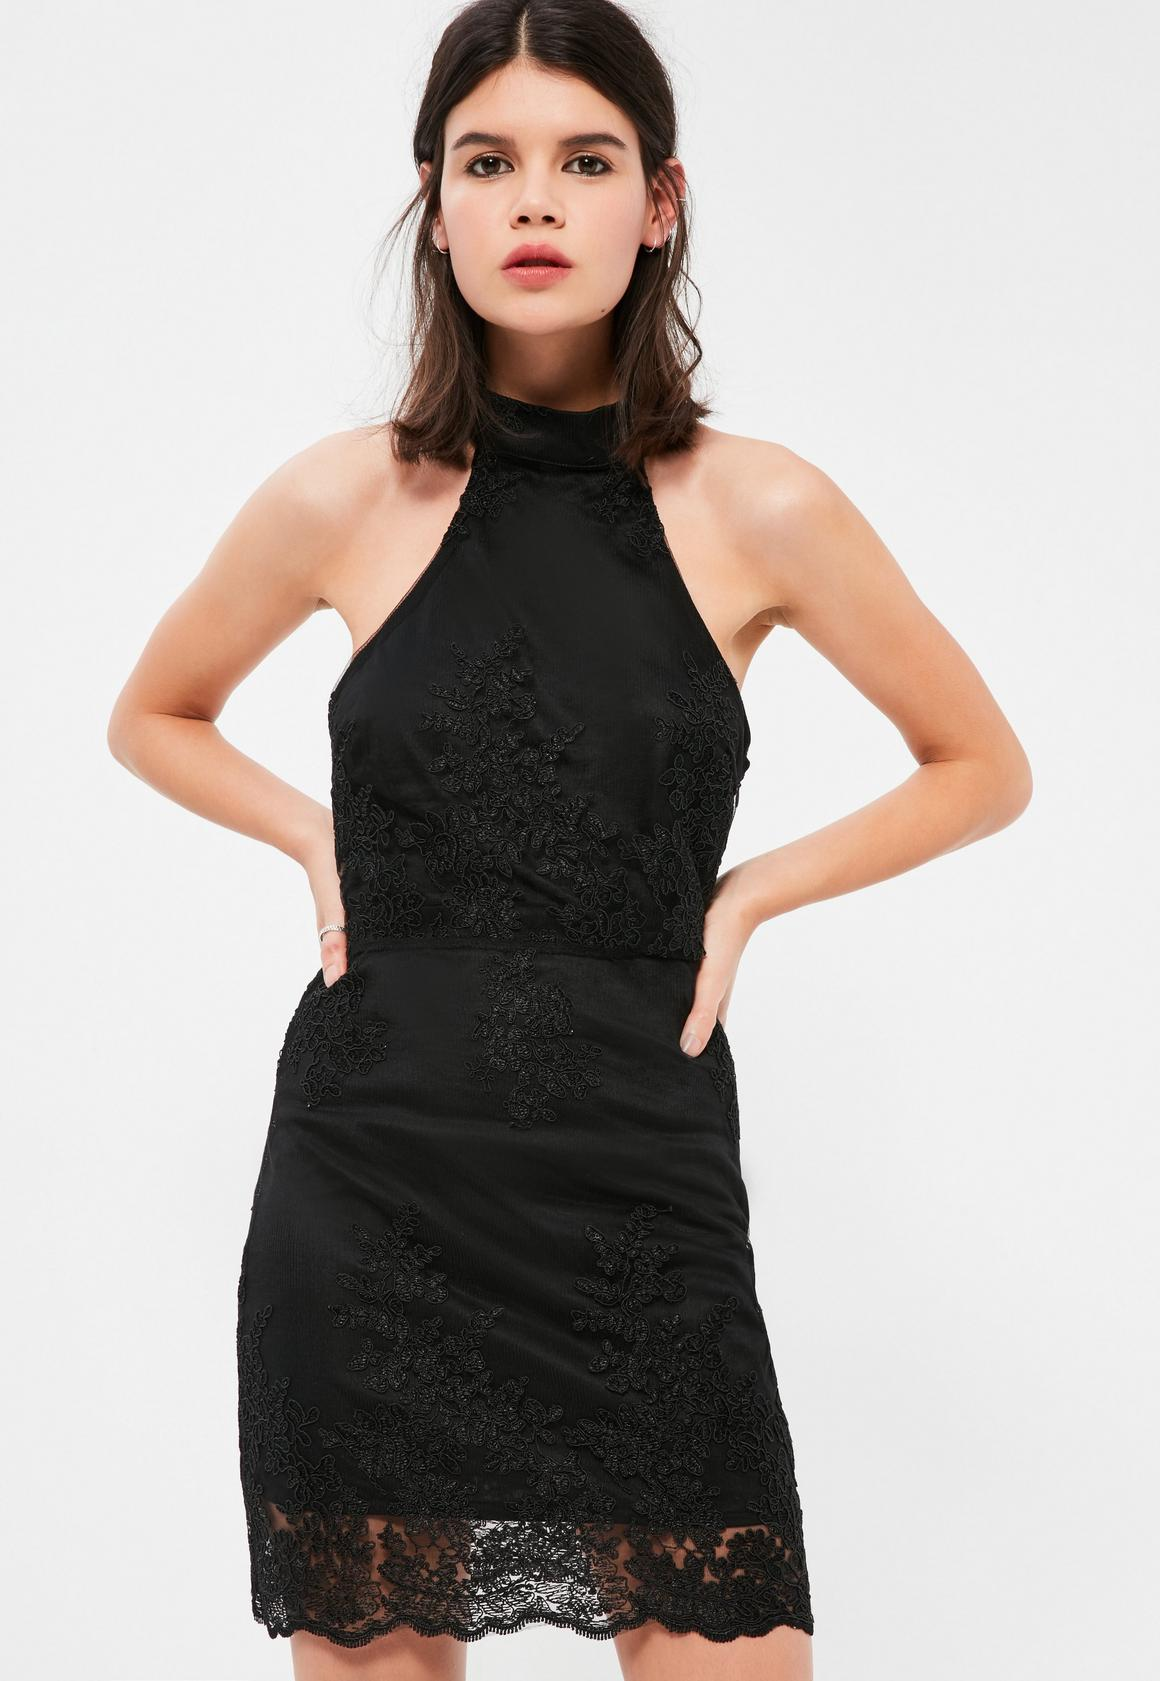 Petite Black High Neck Lace Dress | Missguided Ireland